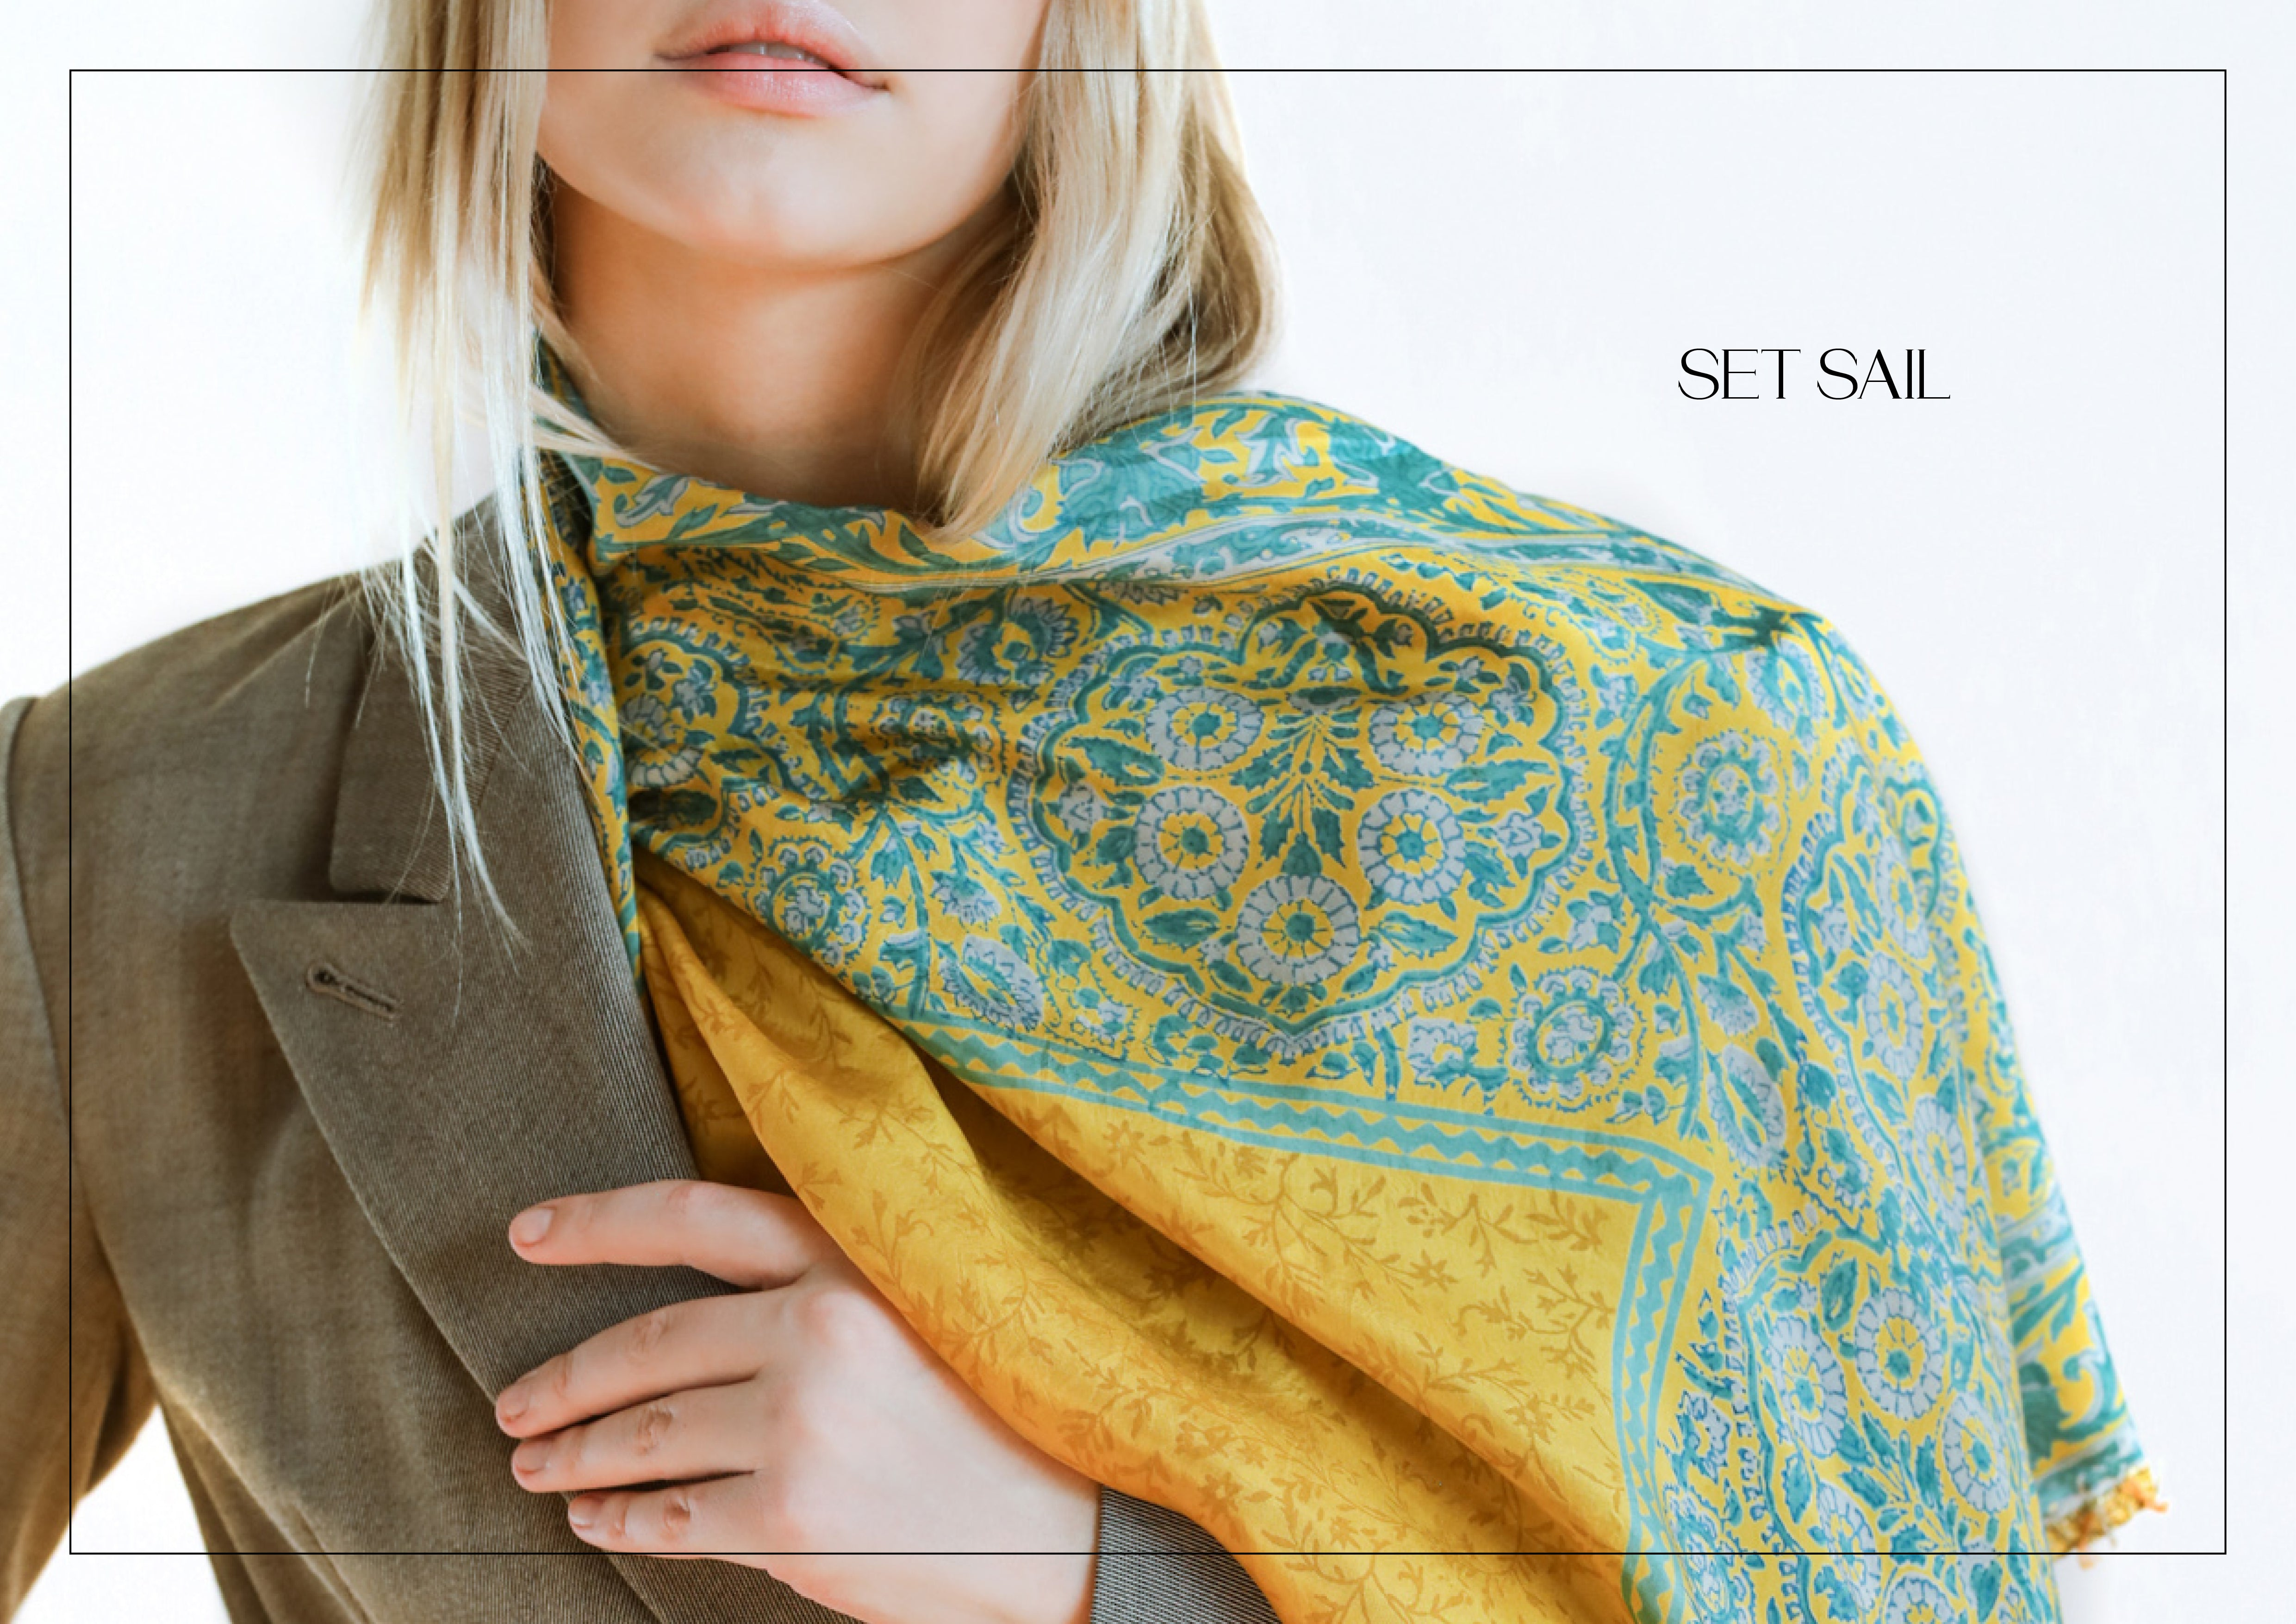 Handcrafted Fashionable Silk Scarves by Namaskaya